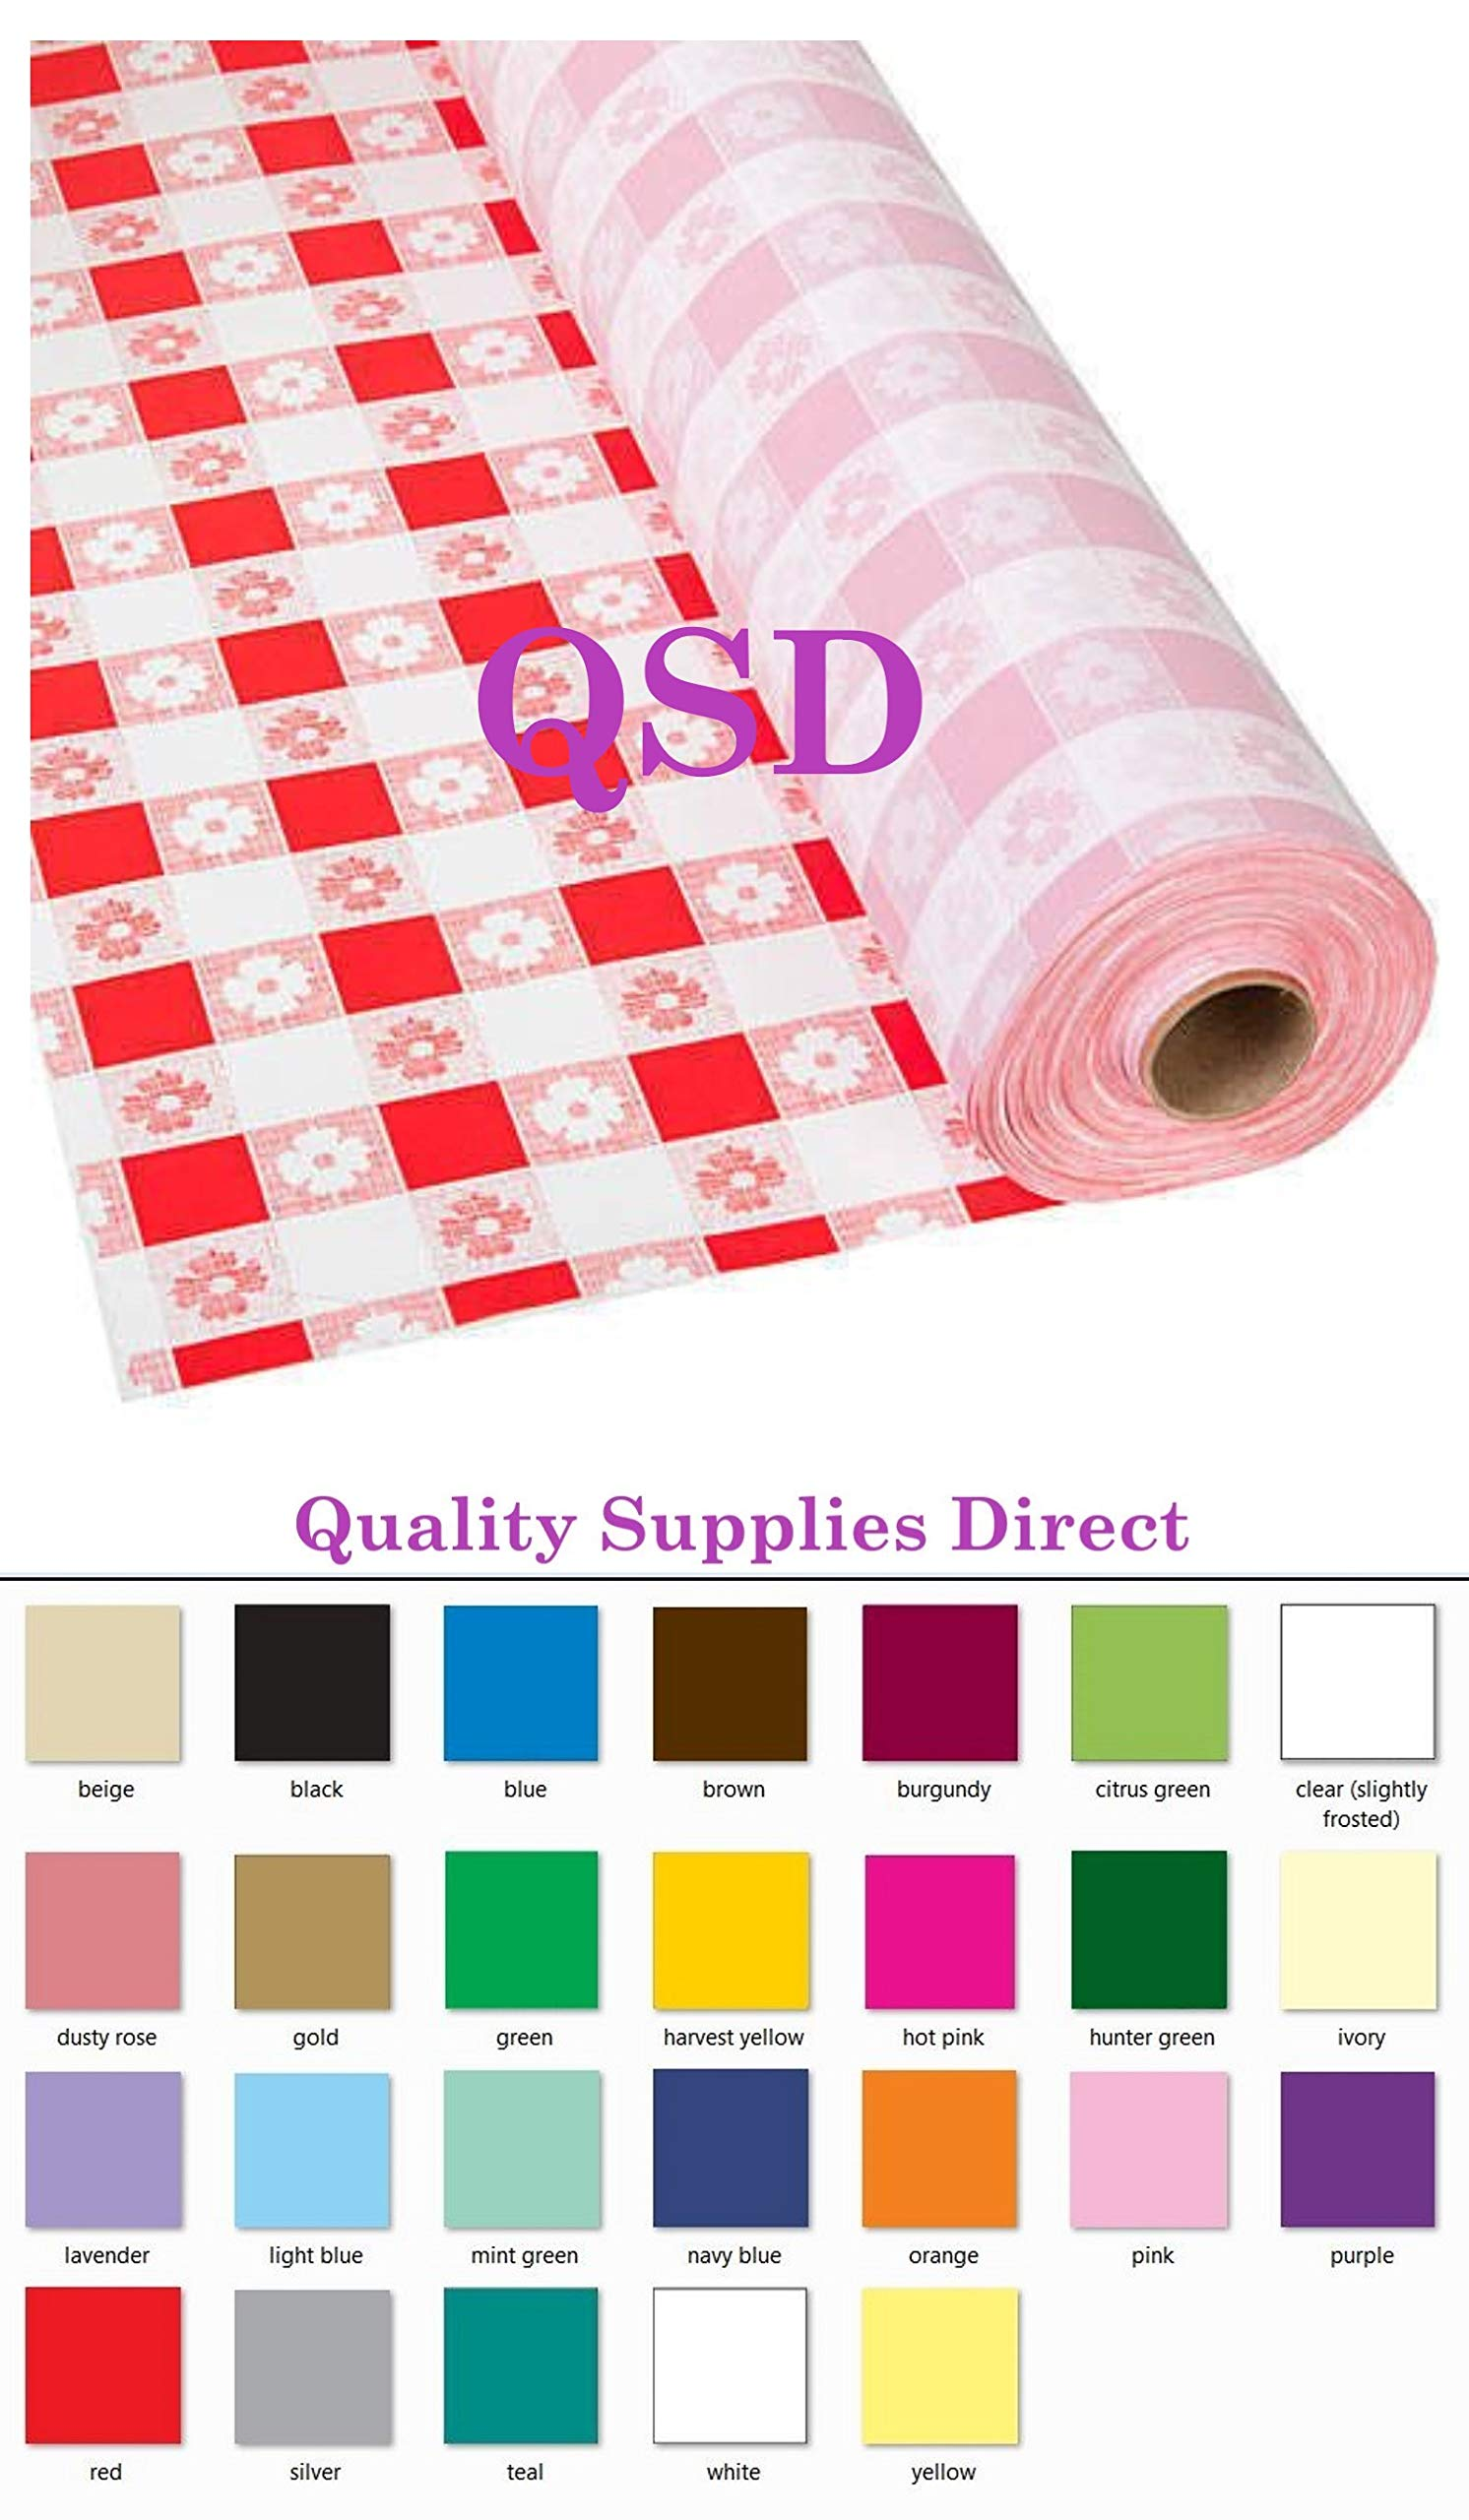 QSD Plastic Party Banquet Table Cover Roll - 300 ft. x 40 in. - 8ft Table Covers (Red Gingham) (26 Colors Available) by QSD